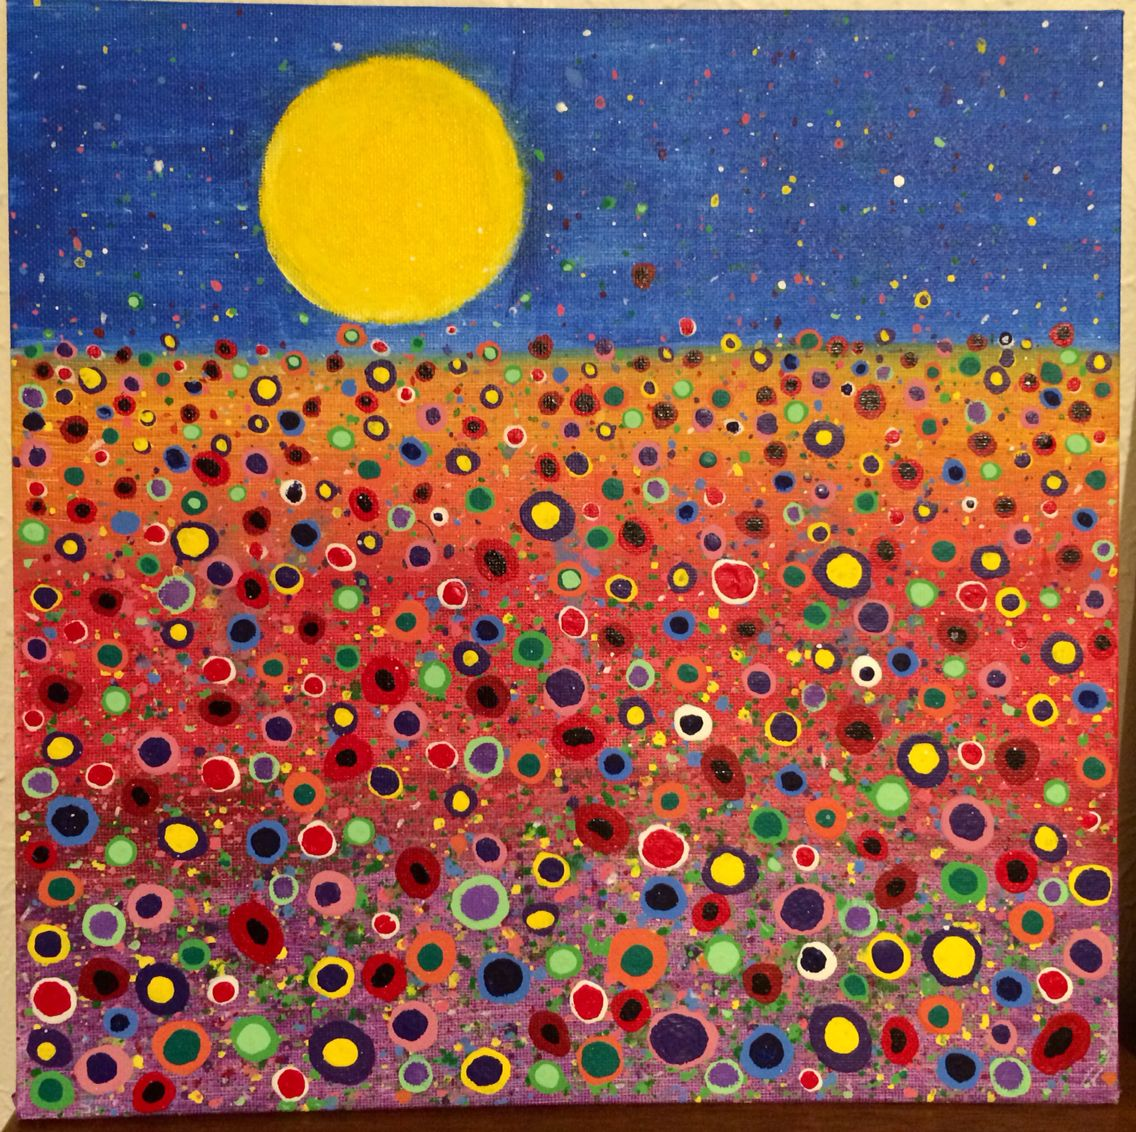 I painted this one from Angela Anderson's tutorial based on Yvonne Coomber's style.